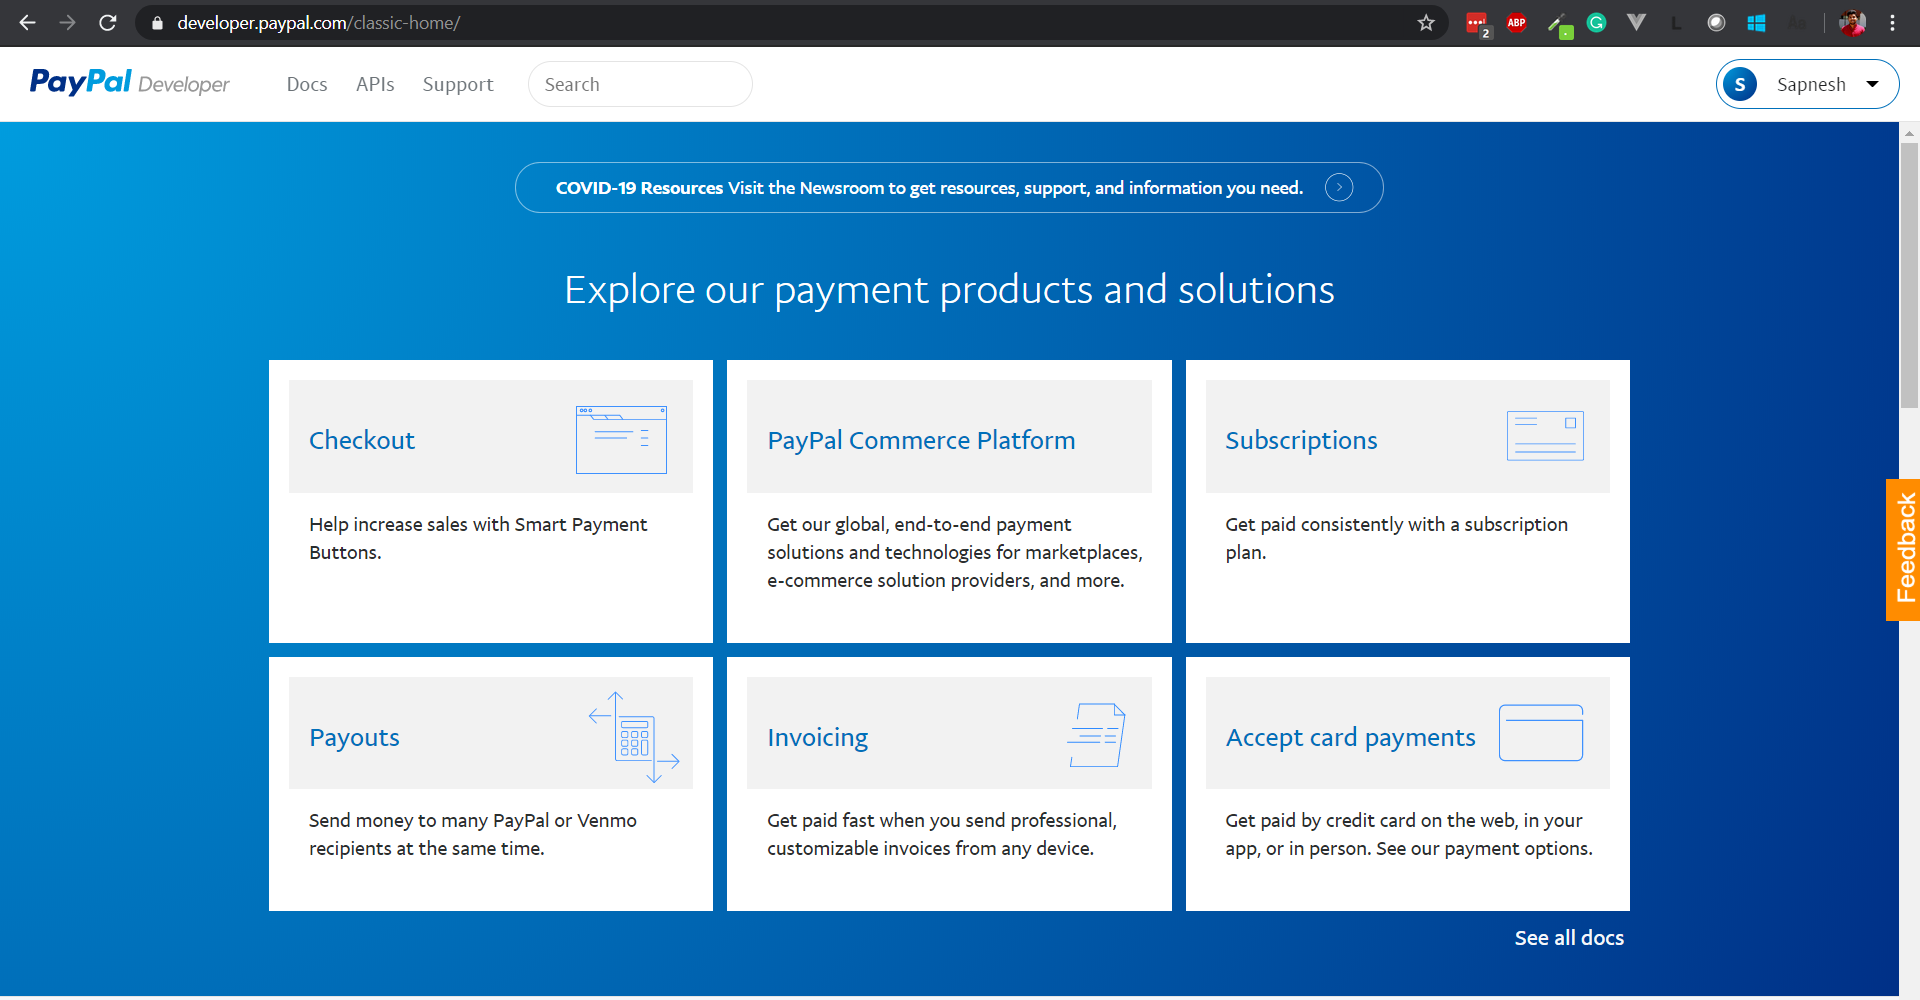 Log in to PayPal Developer Account